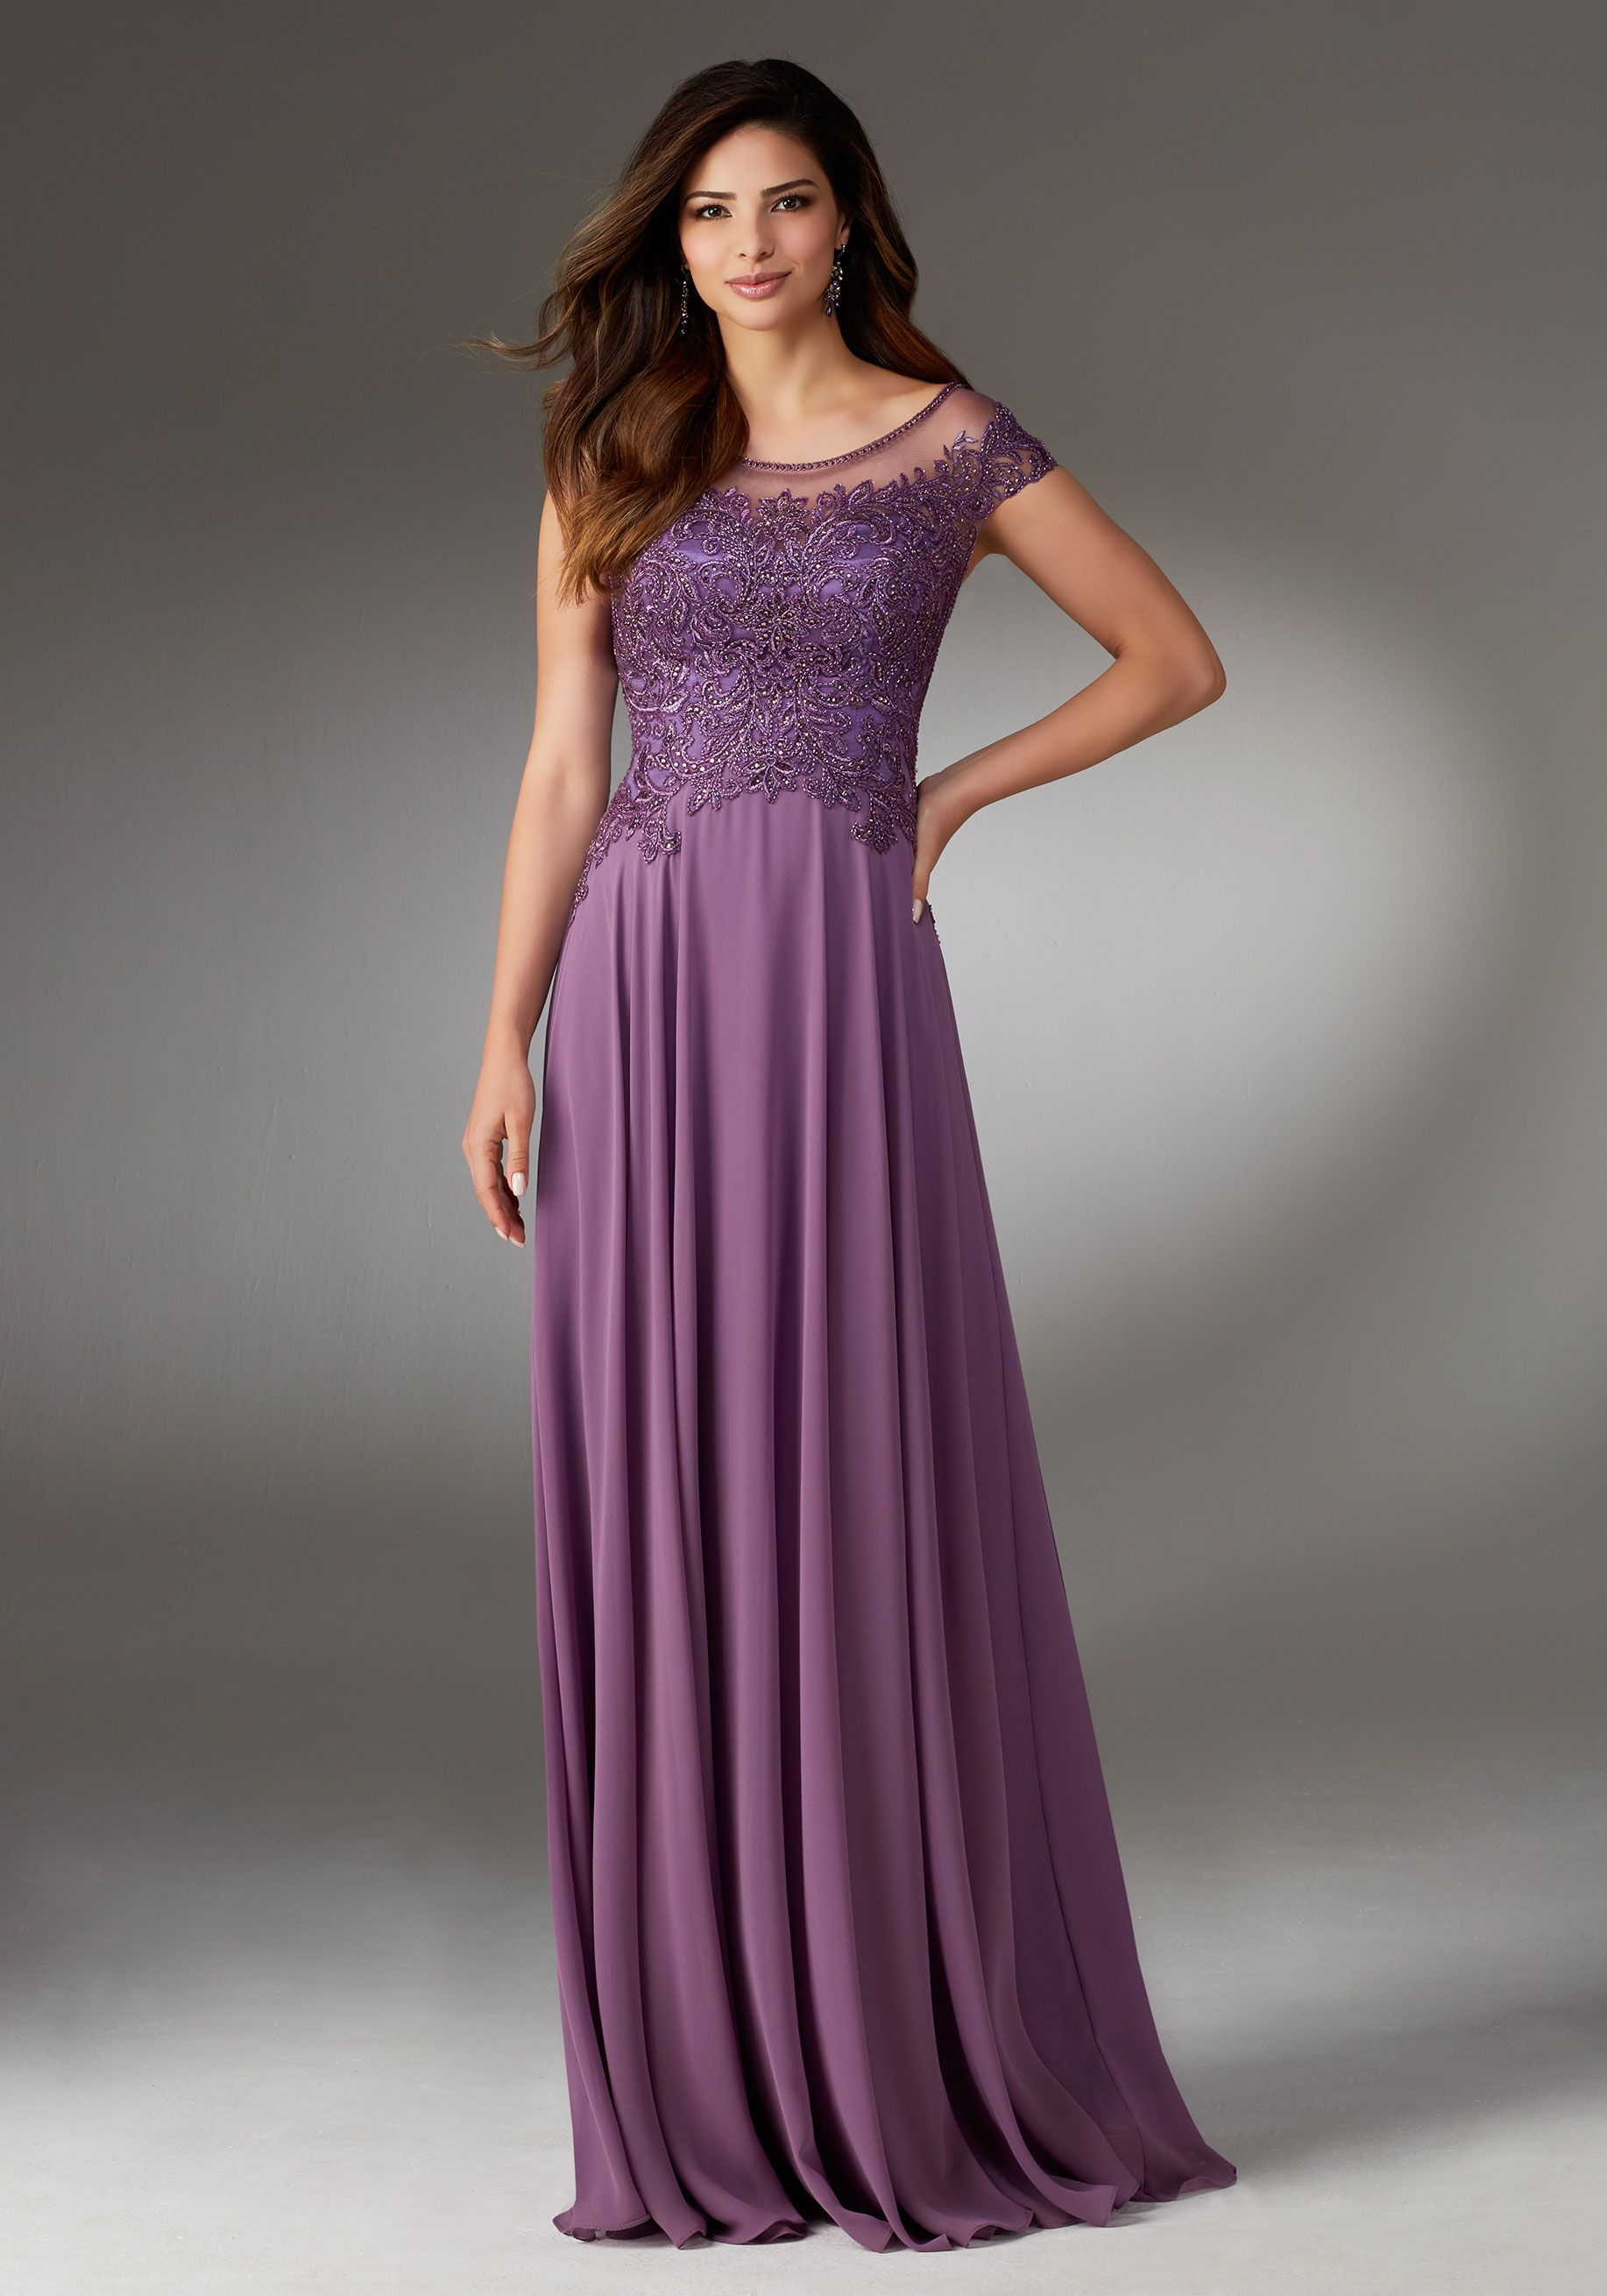 Chiffon Social Occasion Gown with Beaded and Embroidered